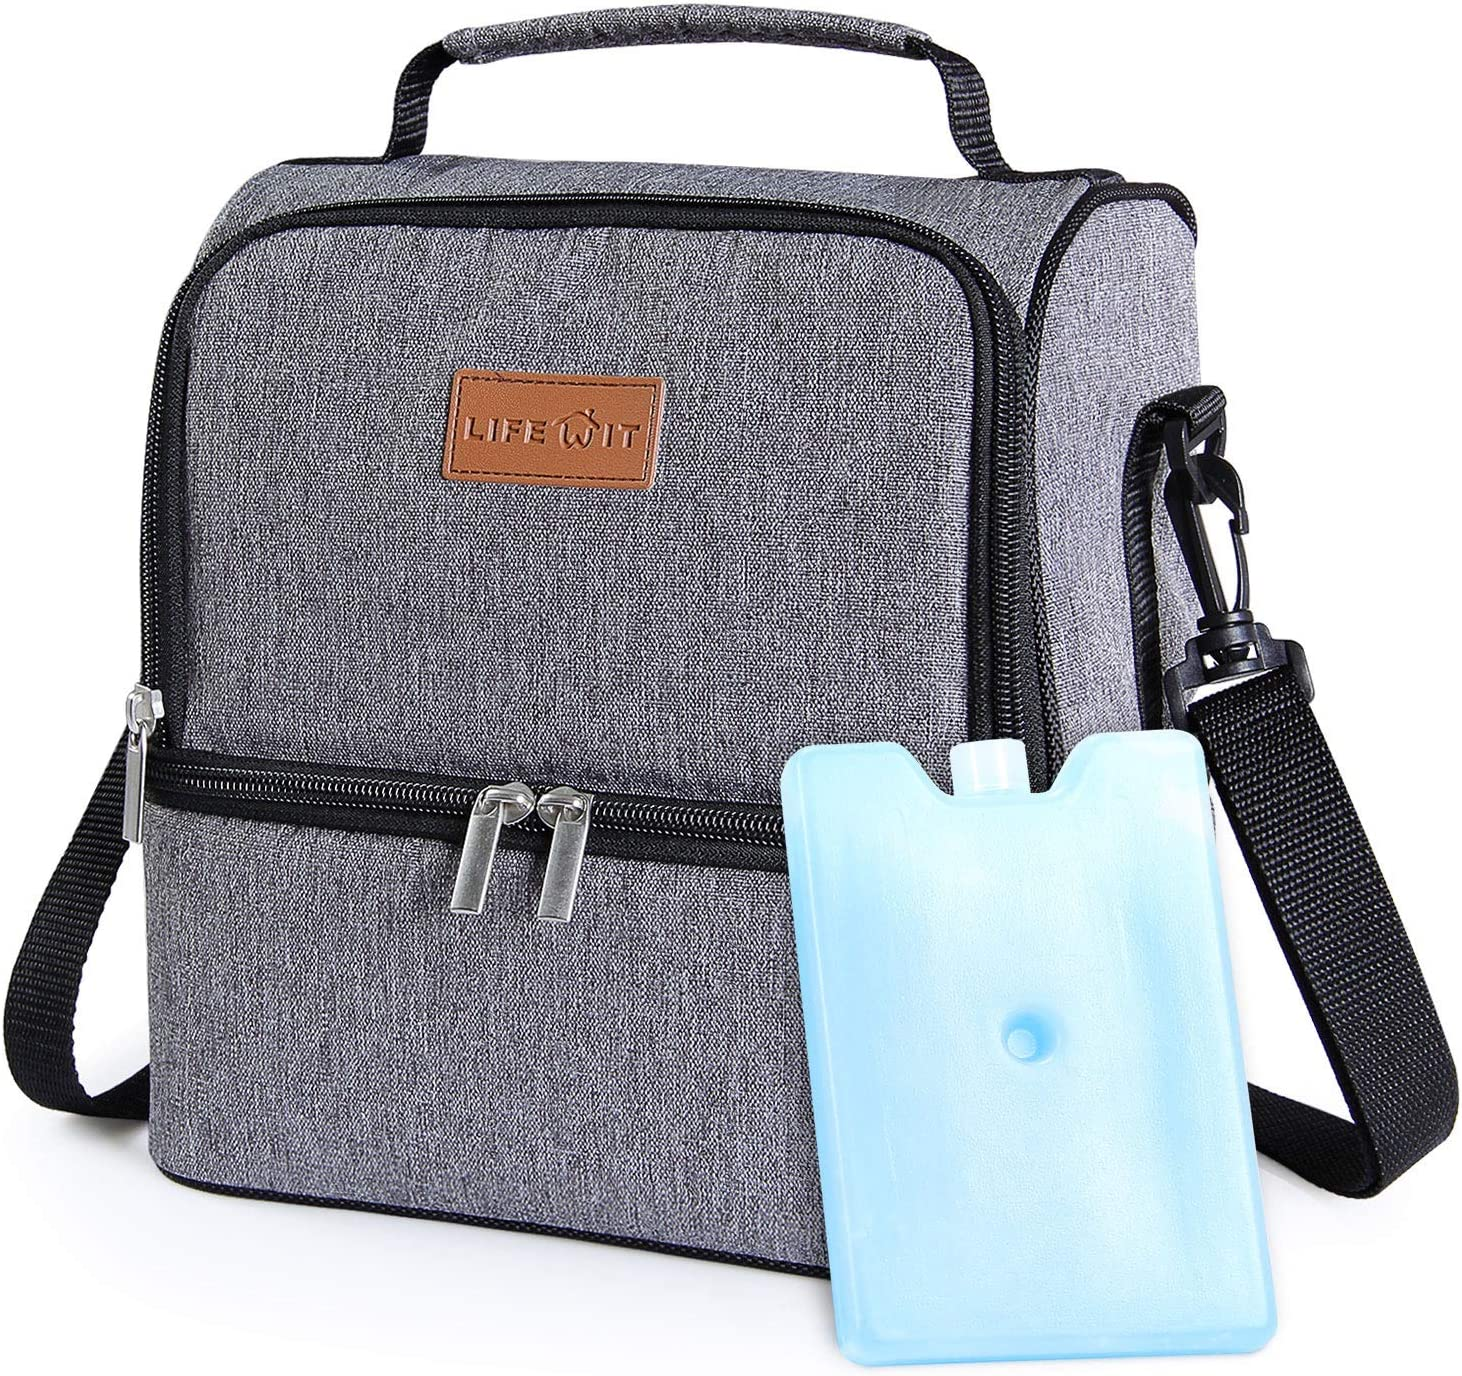 Lifewit 7L Dual Compartment Insulated Lunch Bag with Ice Pack for AdultsMenWomenKids, Water Resistant Leakproof Soft Cooler Bag Thermal Bento Box